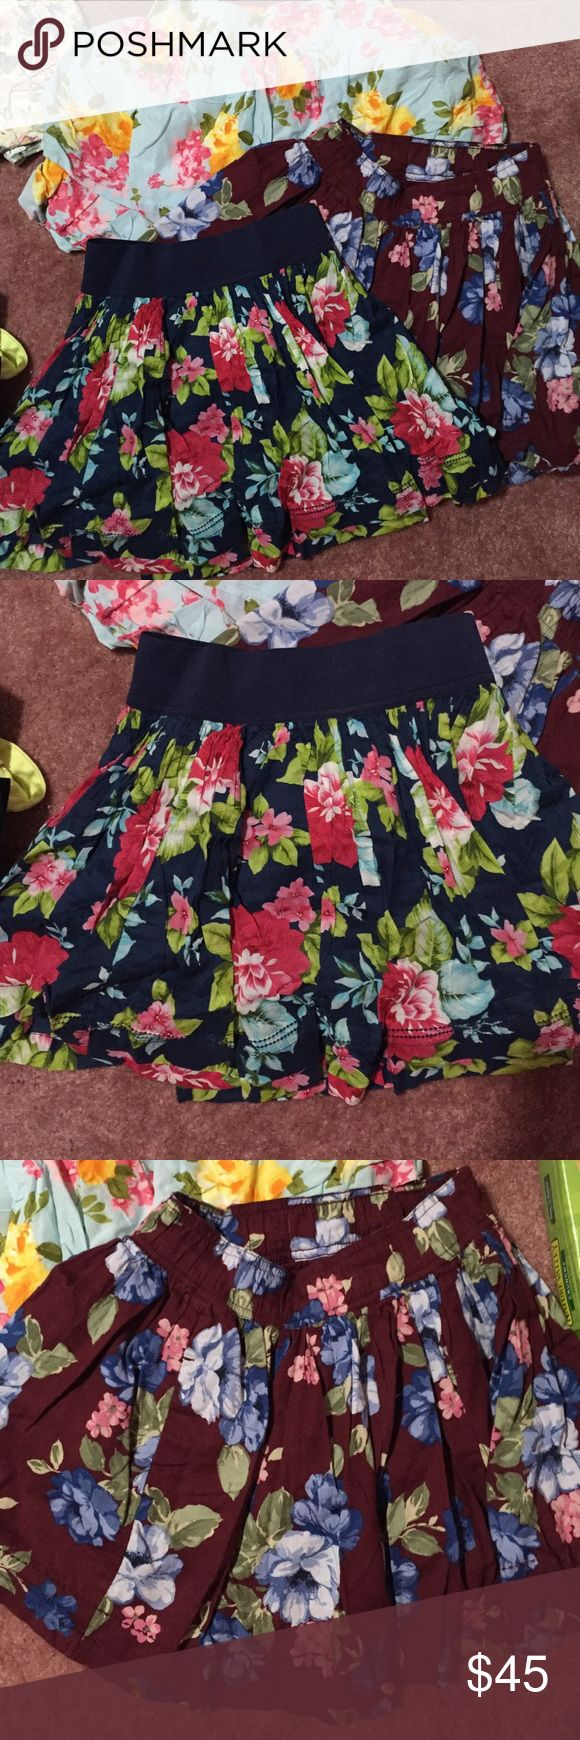 All new skirts All new Abercrombie and Fitch floral skirts in XS. $15 each Abercrombie & Fitch Dresses